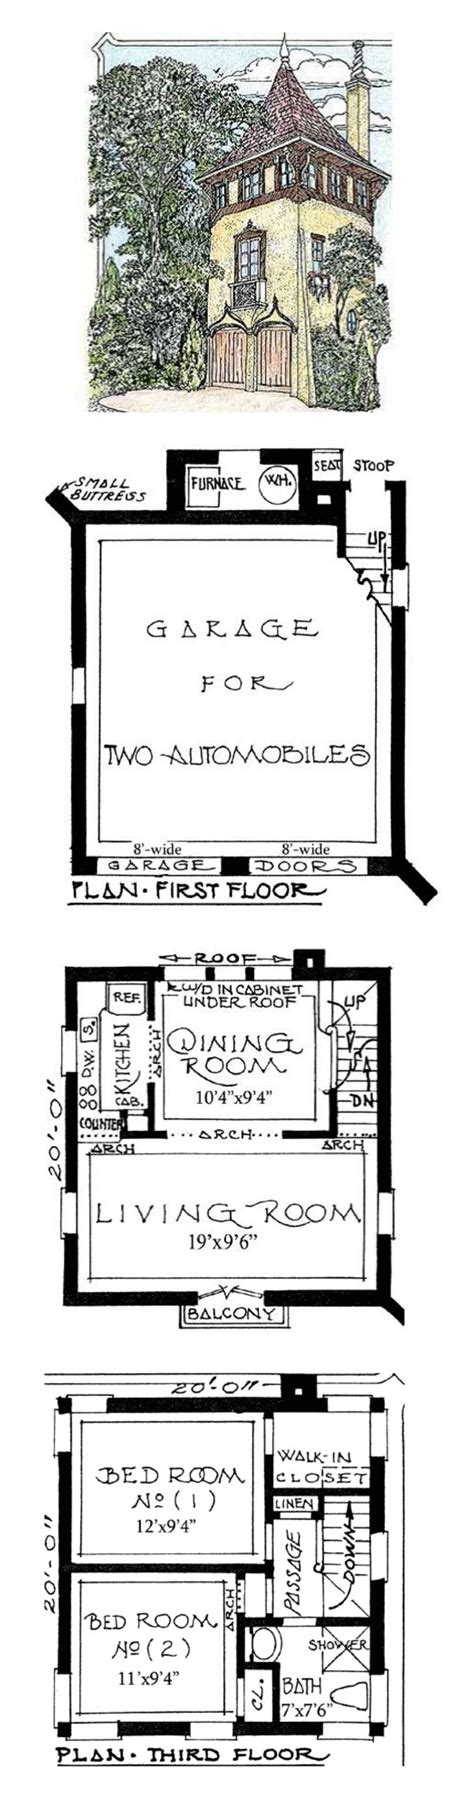 small carriage house floor plans architectural designs romantic carriage house plans